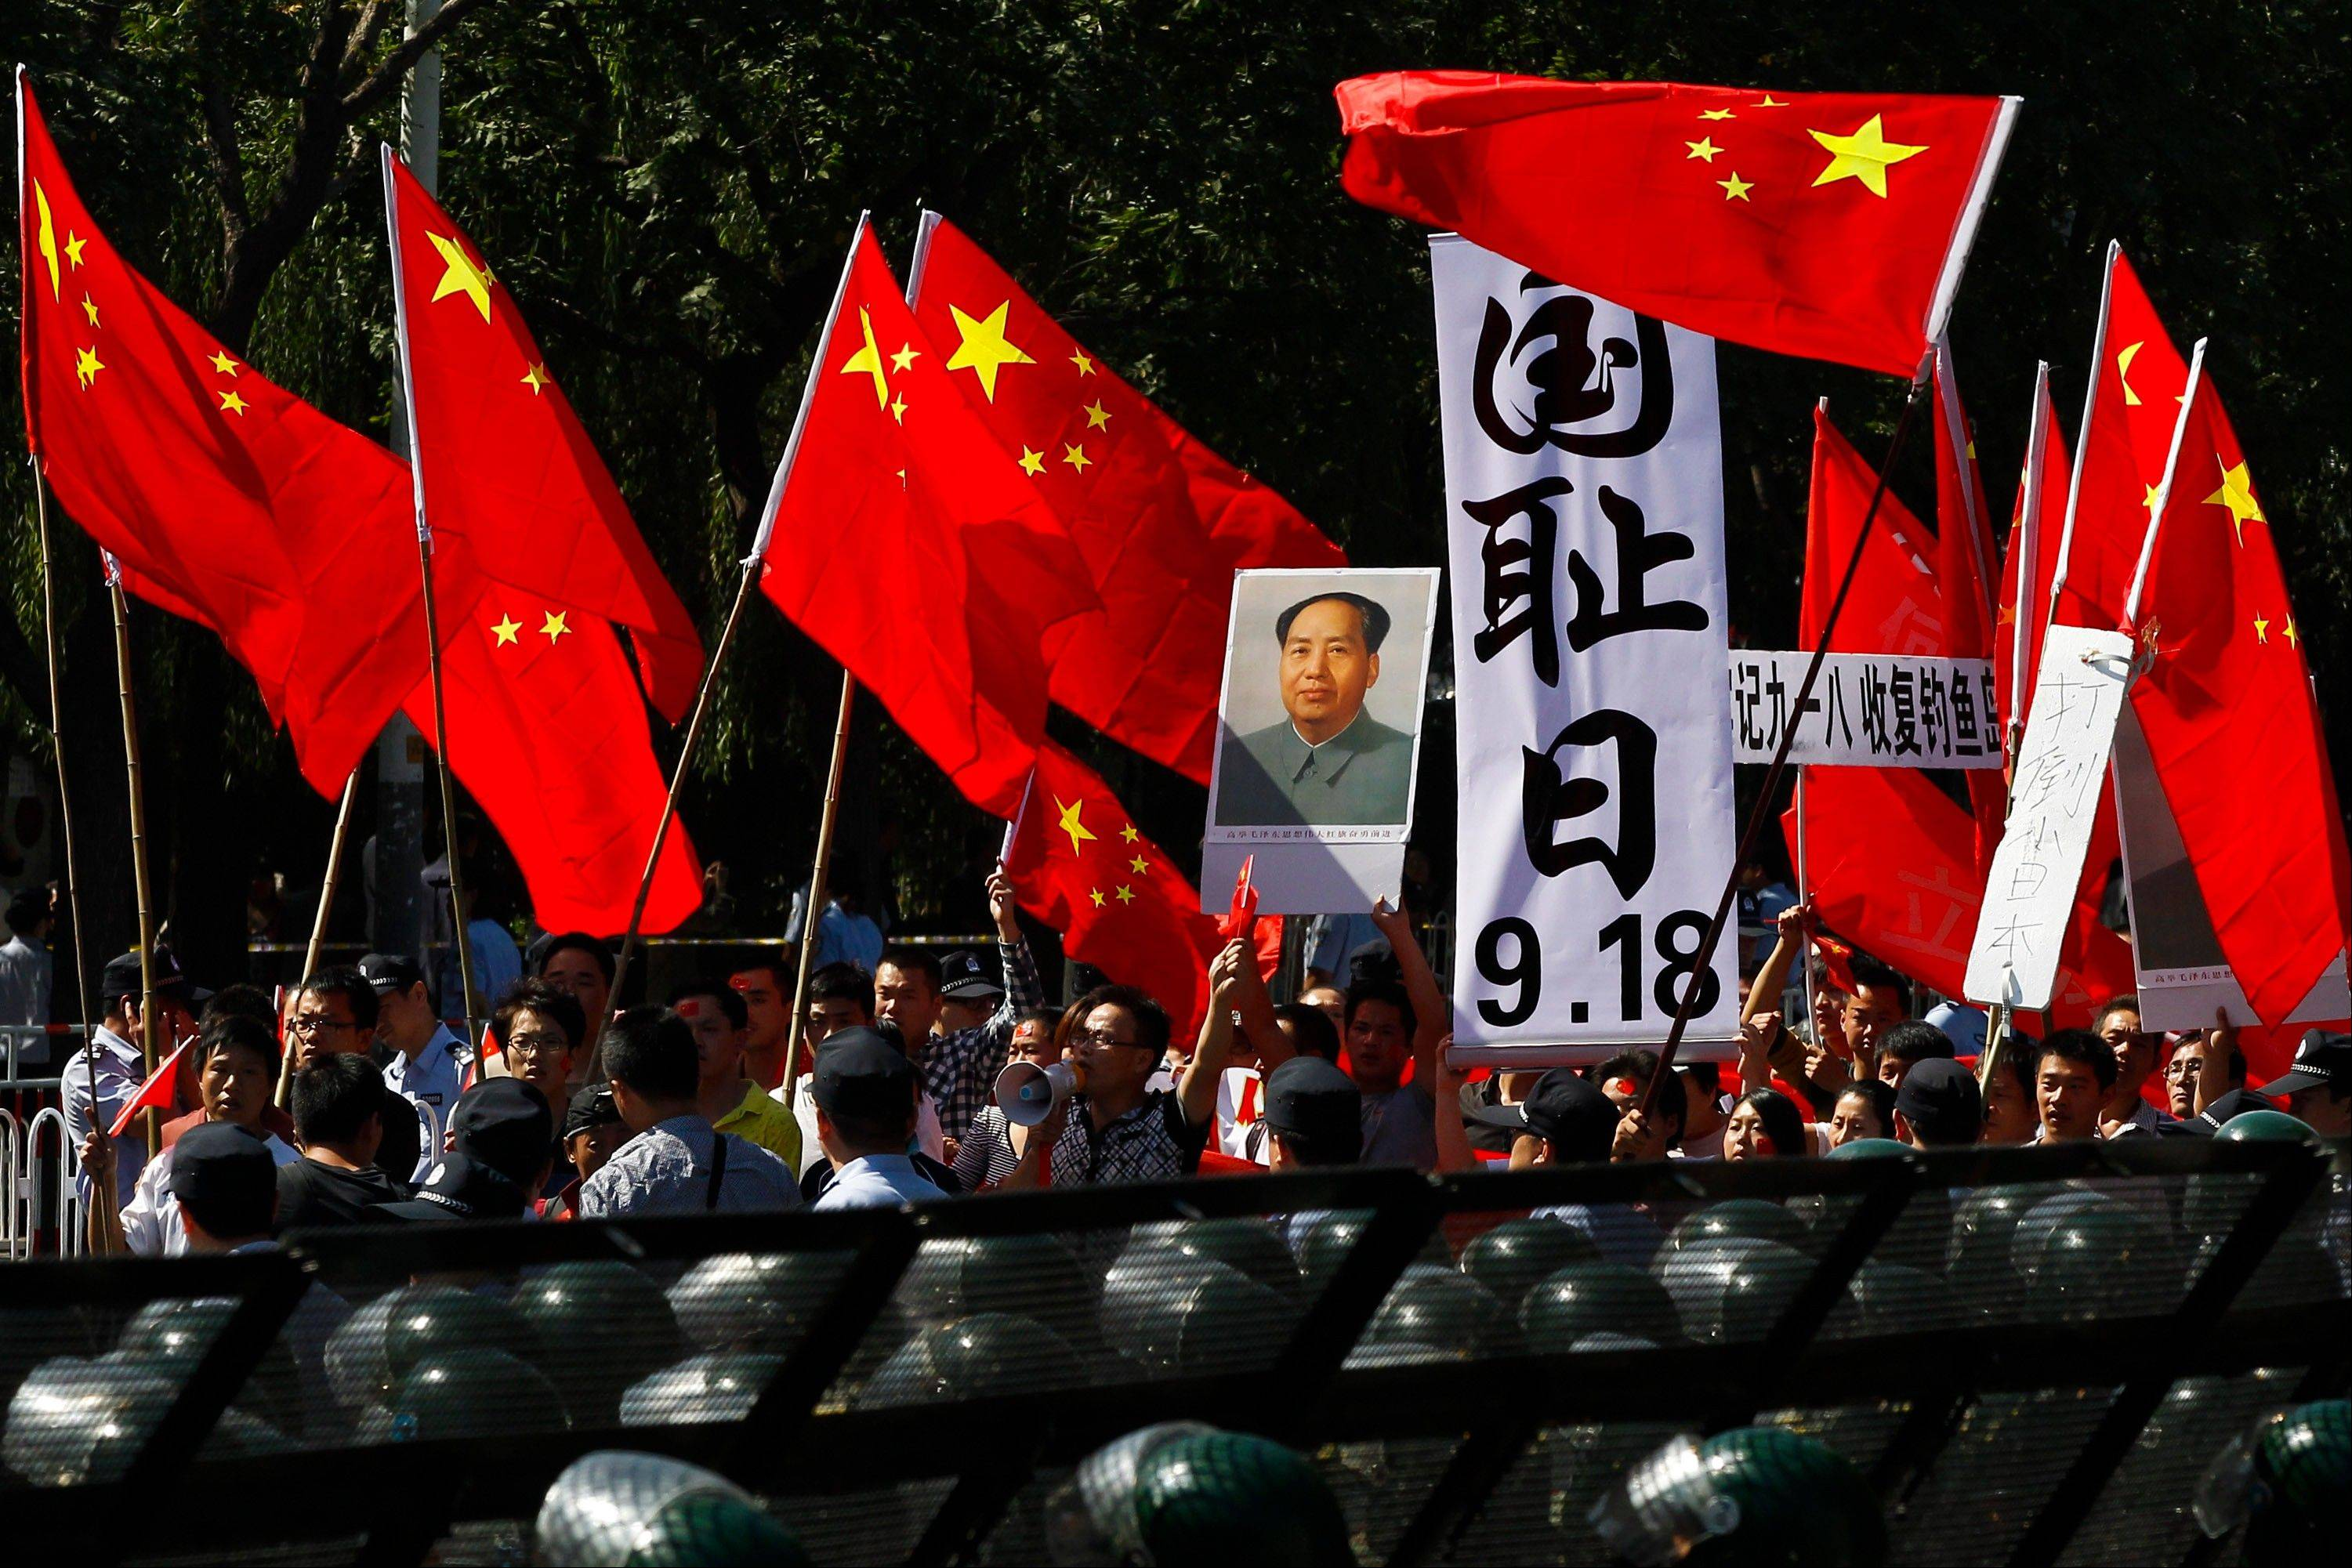 "Anti-Japan protesters hold portraits of the late Communist leader Mao Zedong, Chinese national flags, and a poster that reads: ""Sept. 18, National Humiliation Day,"" while marching on a street outside the Japanese Embassy in Beijing Tuesday, Sept. 18, 2012. The 81st anniversary of a Japanese invasion brought a fresh wave of anti-Japan demonstrations in China on Tuesday, with thousands of protesters venting anger over the colonial past and a current dispute involving contested islands in the East China Sea."